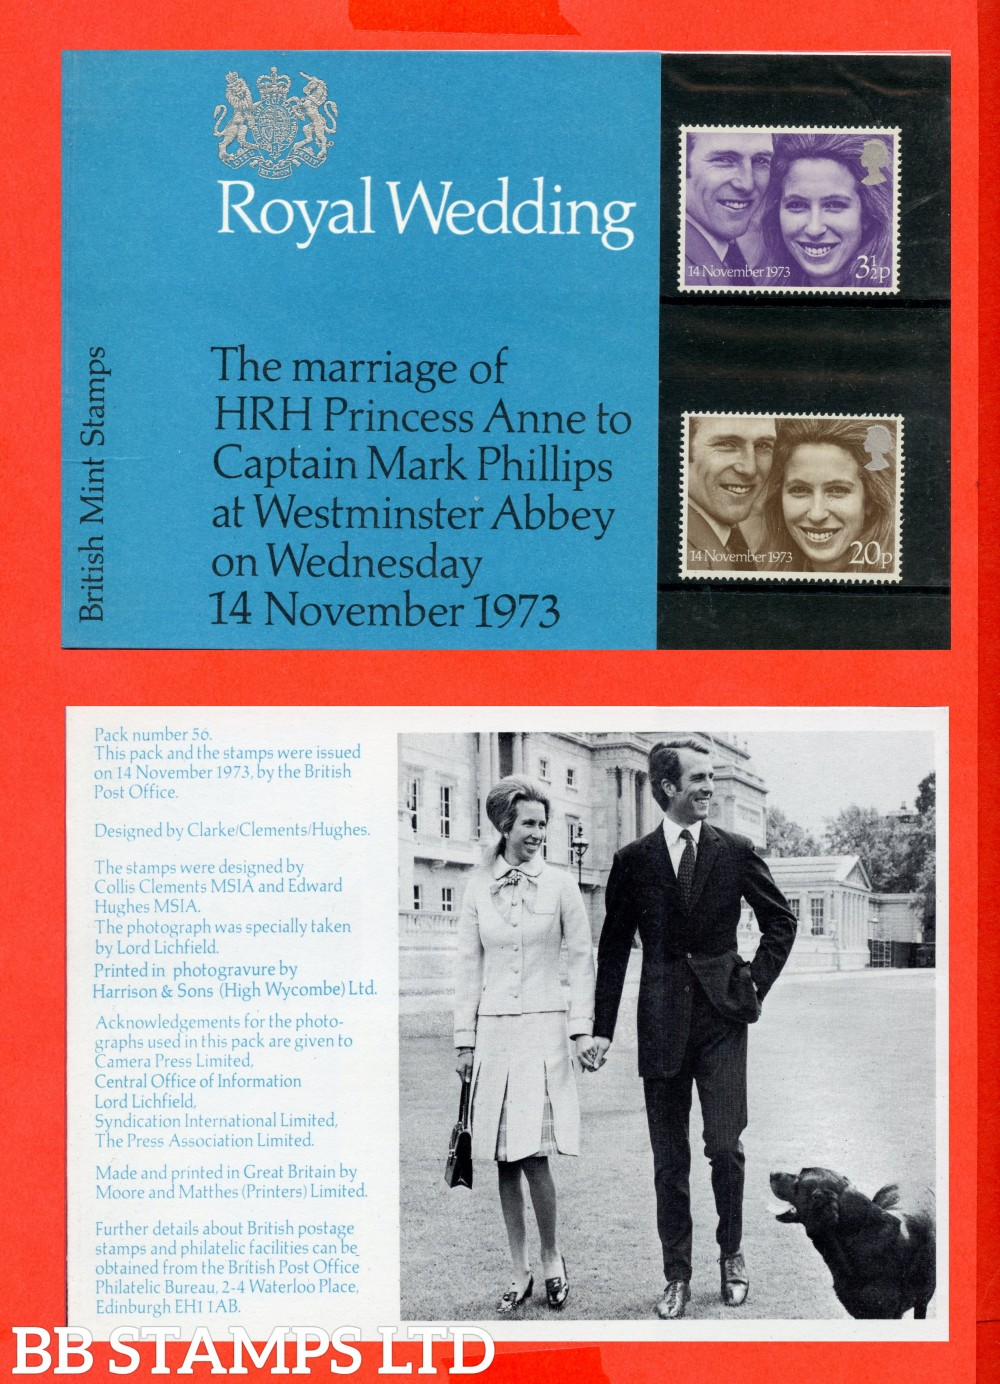 1973 Royal Wedding (Pres Pack is Type C = Flower Between Unicorns Legs. Dog Cut Off Edge of Picture)